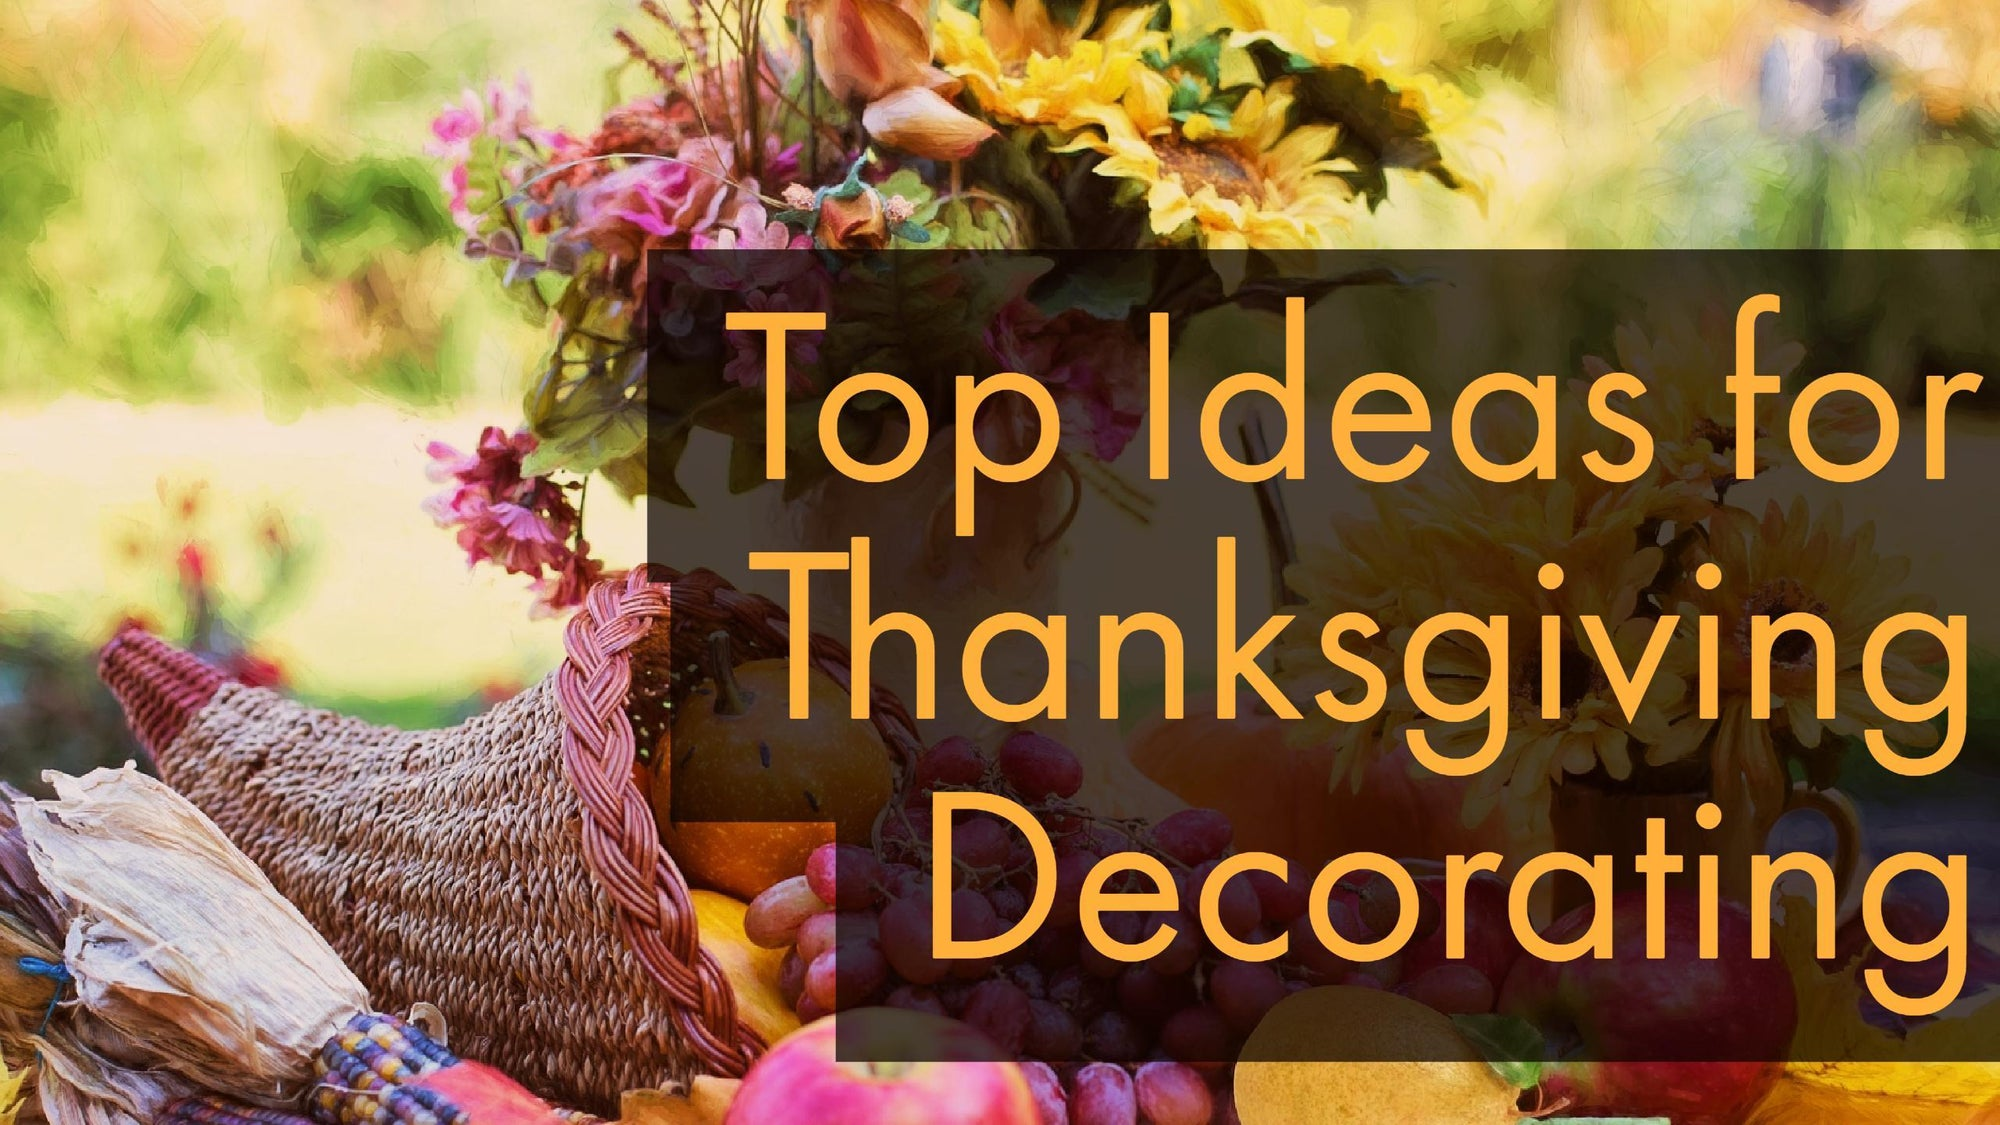 Top Ideas for Thanksgiving Decorating